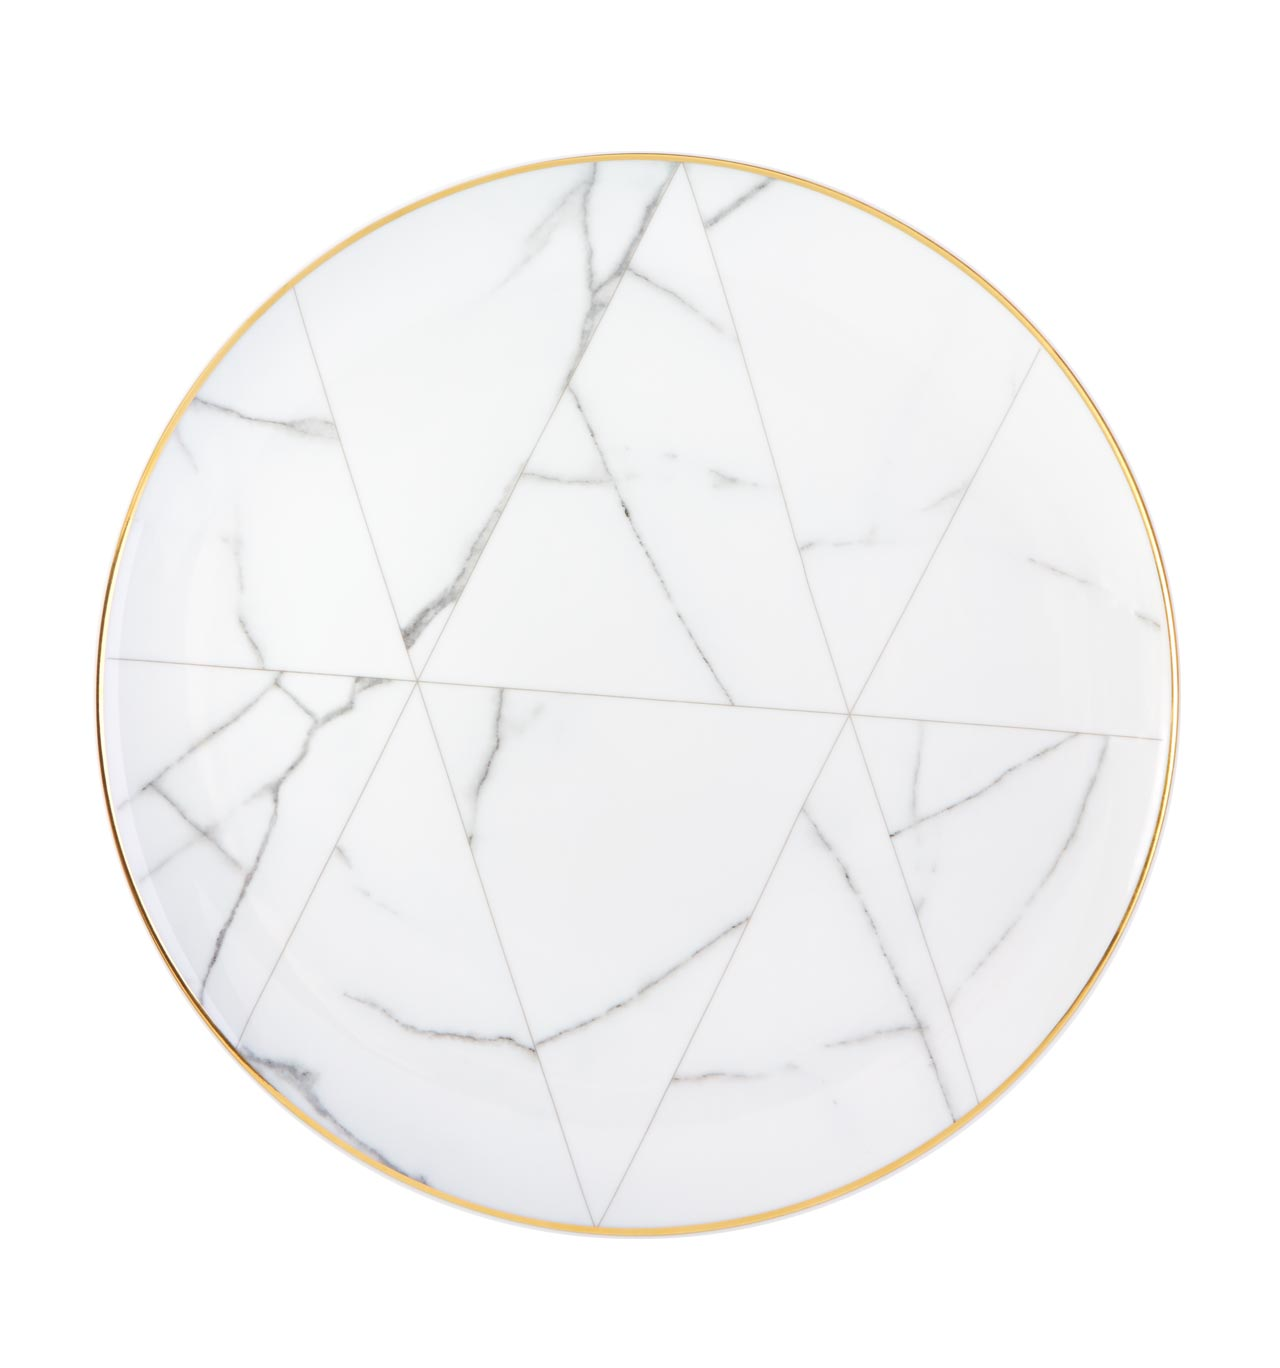 Carrara Porcelain Charger